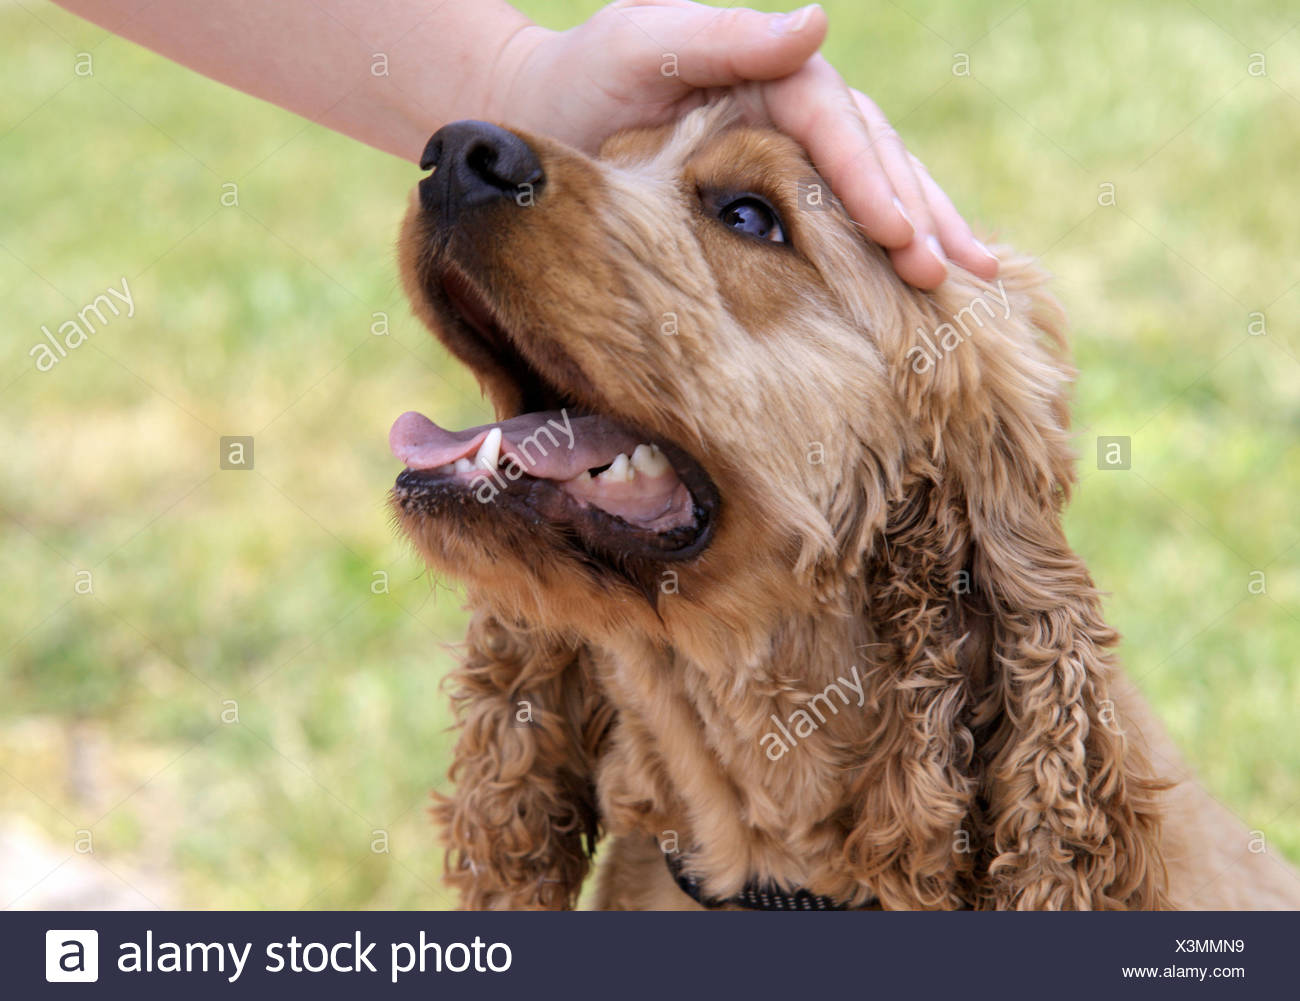 Cocker Spaniel is petted - Stock Image